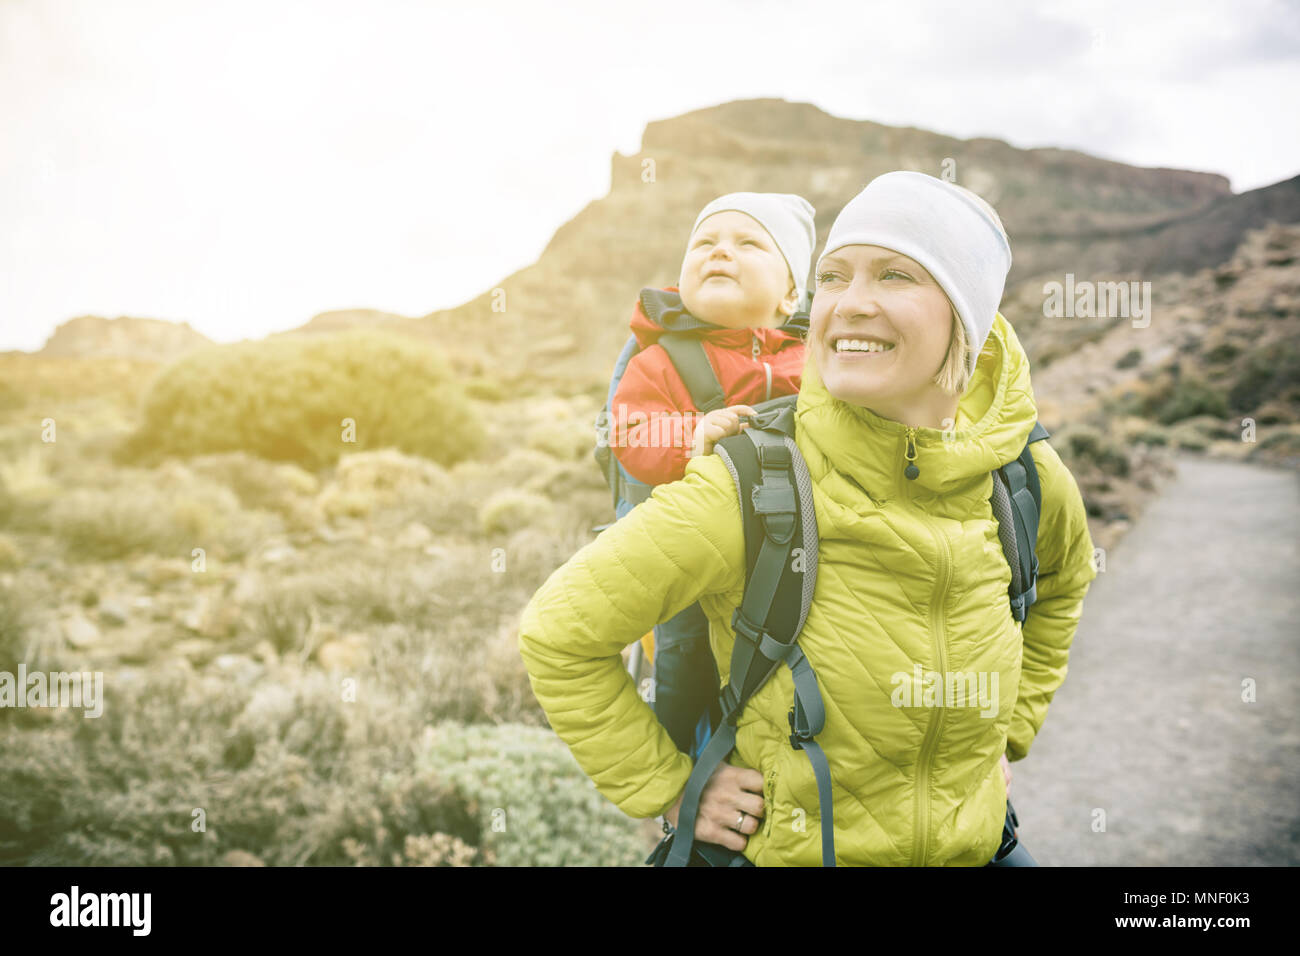 Super mom with baby boy travelling in backpack. Mother on hiking adventure with child, family trip in mountains. Vacations journey with infant carried - Stock Image